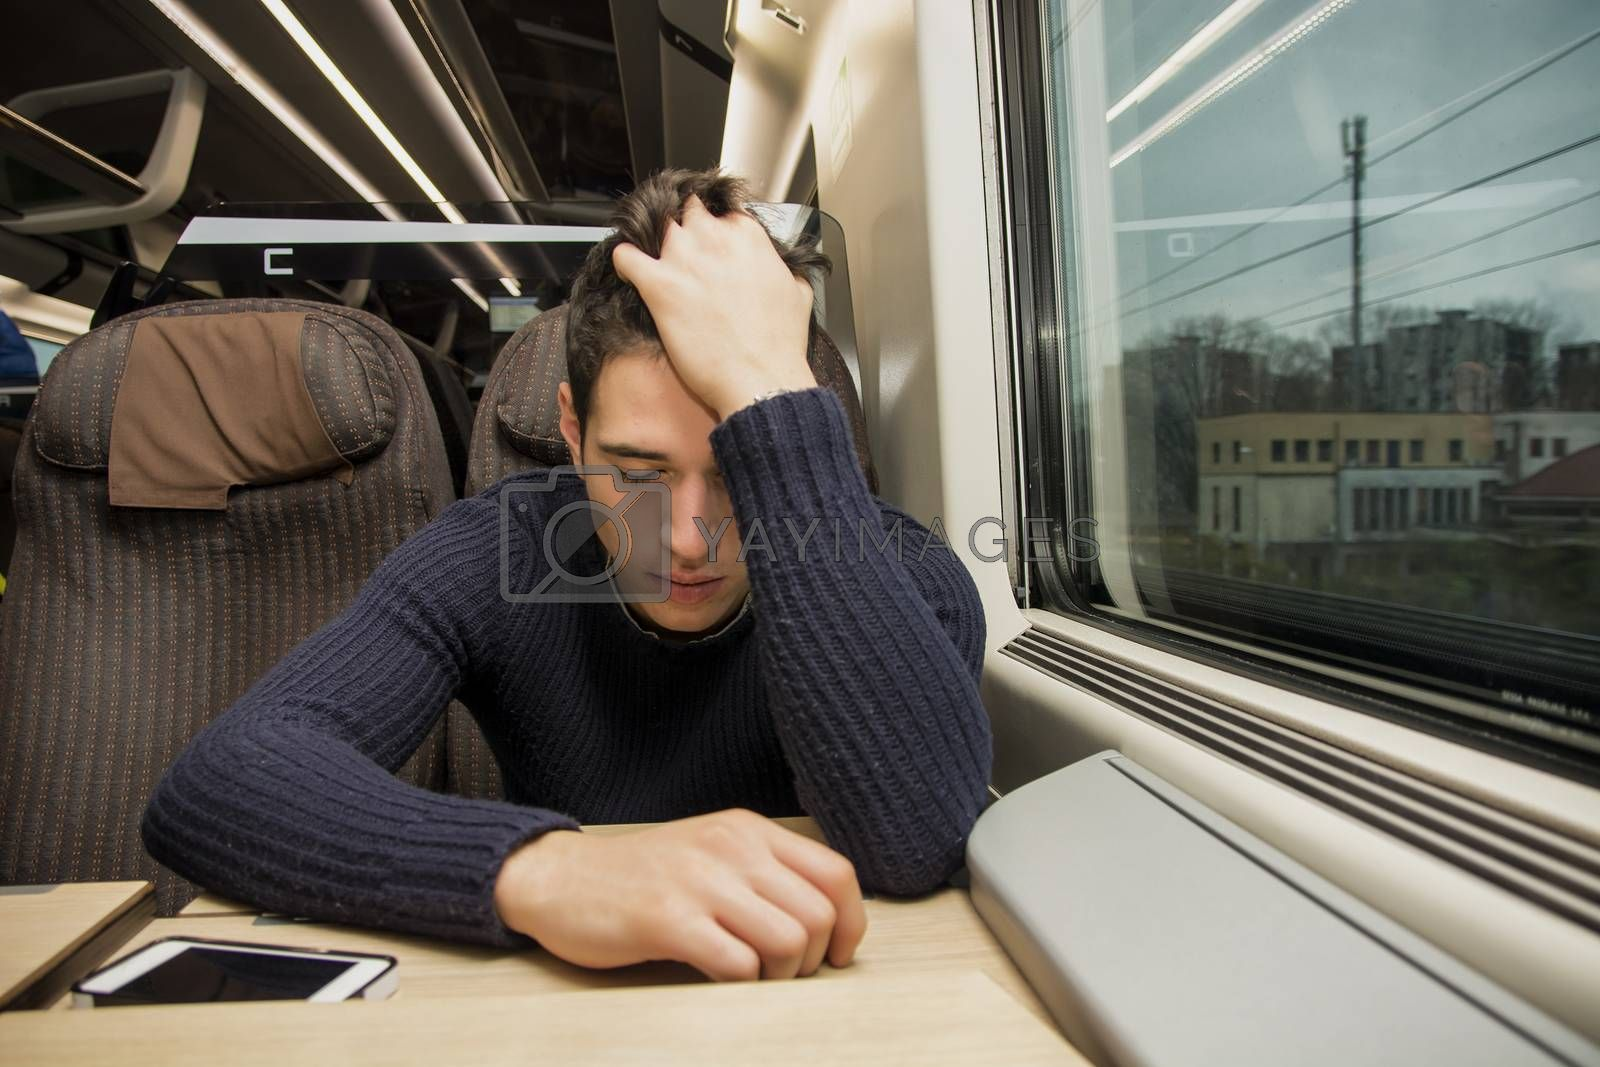 Bored tired young man traveling on a train sitting in a passenger coach with his head resting on his hand and eyes closed